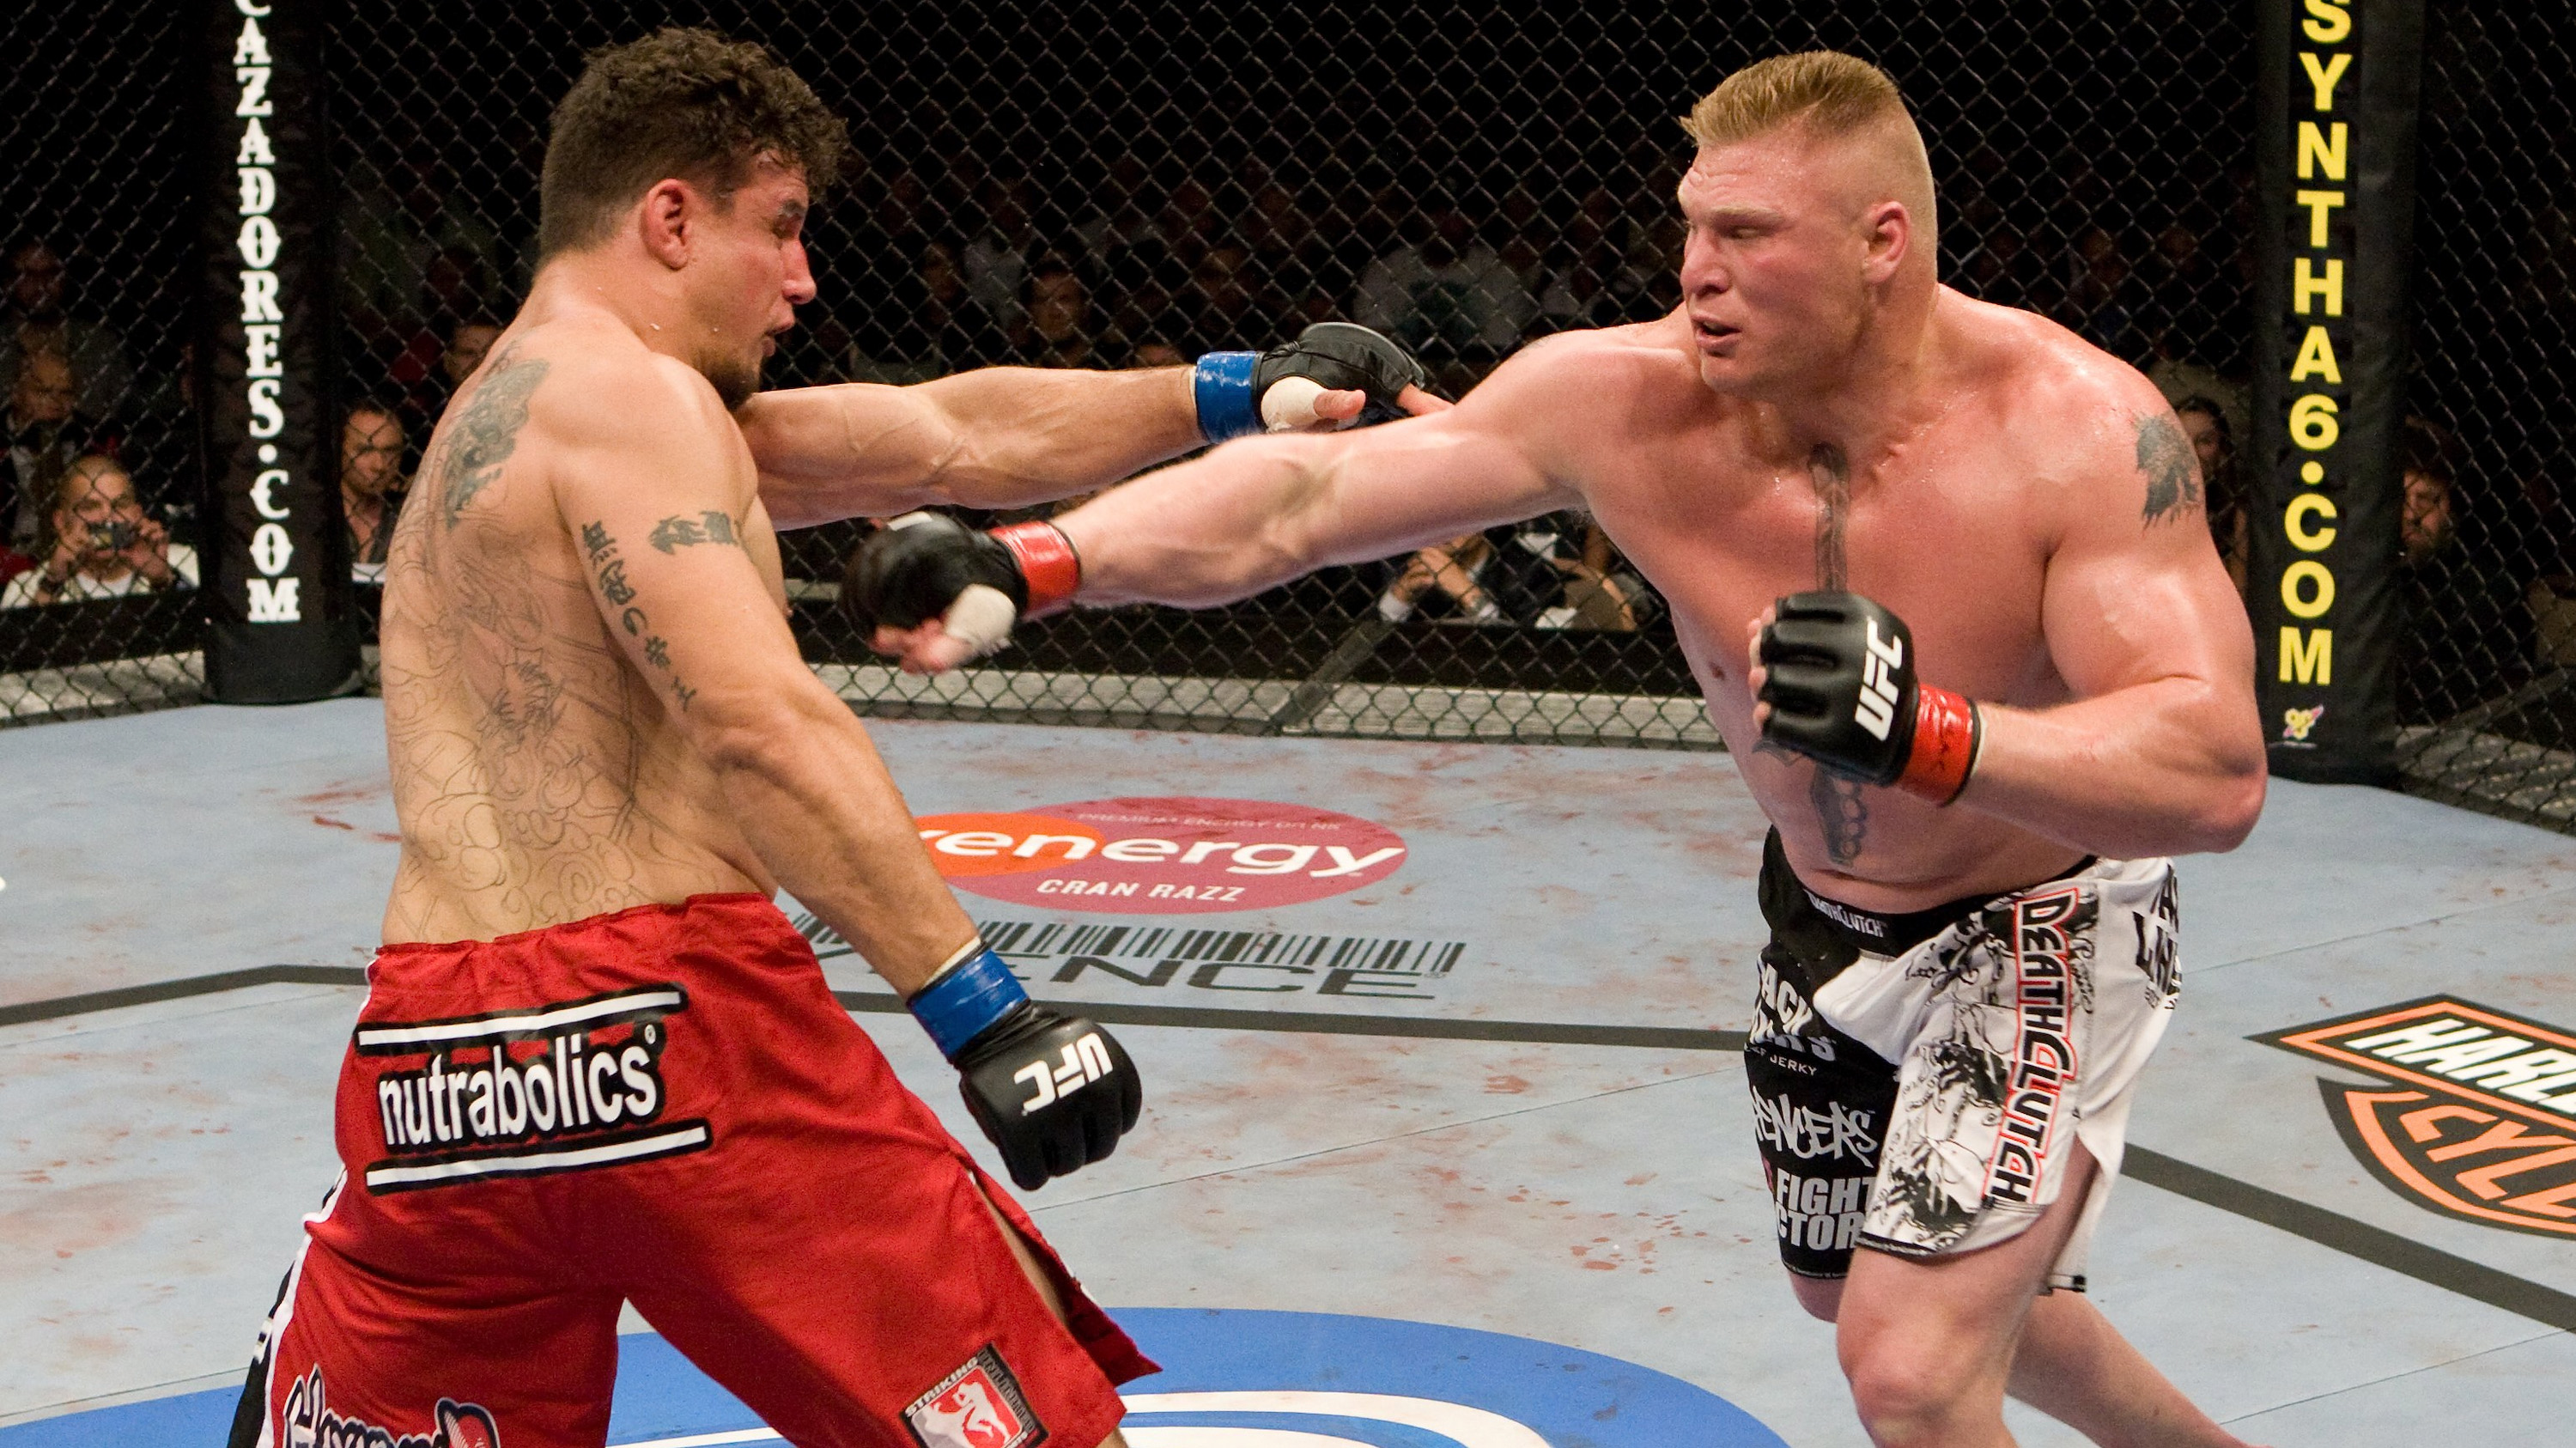 Brock Lesnar def. Frank Mir - TKO - during UFC 100 on July 11, 2009 (Photo by Josh Hedges/Zuffa LLC via Getty Images)